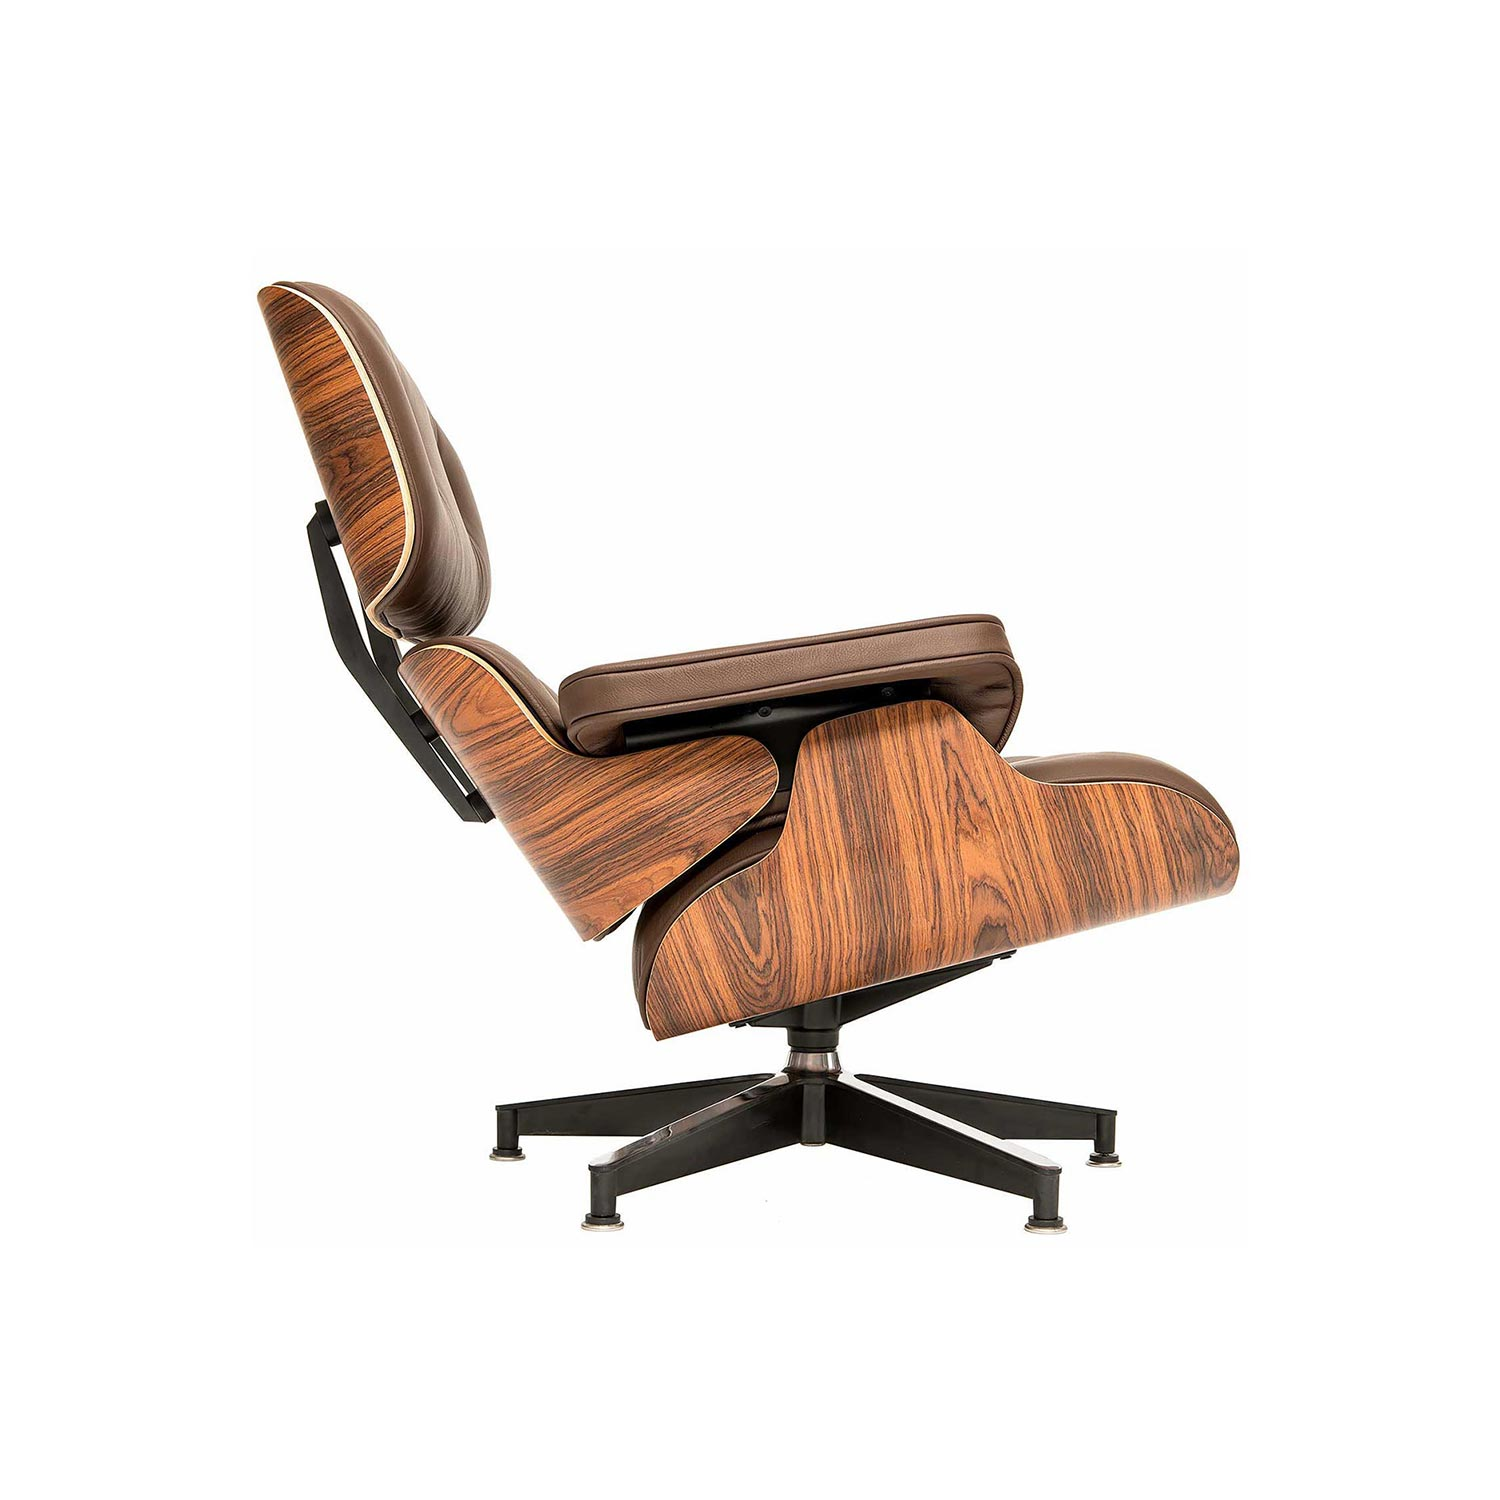 Charles Eames Lounge Chair Charles Eames Designed Lounge Chair – Renown Classics